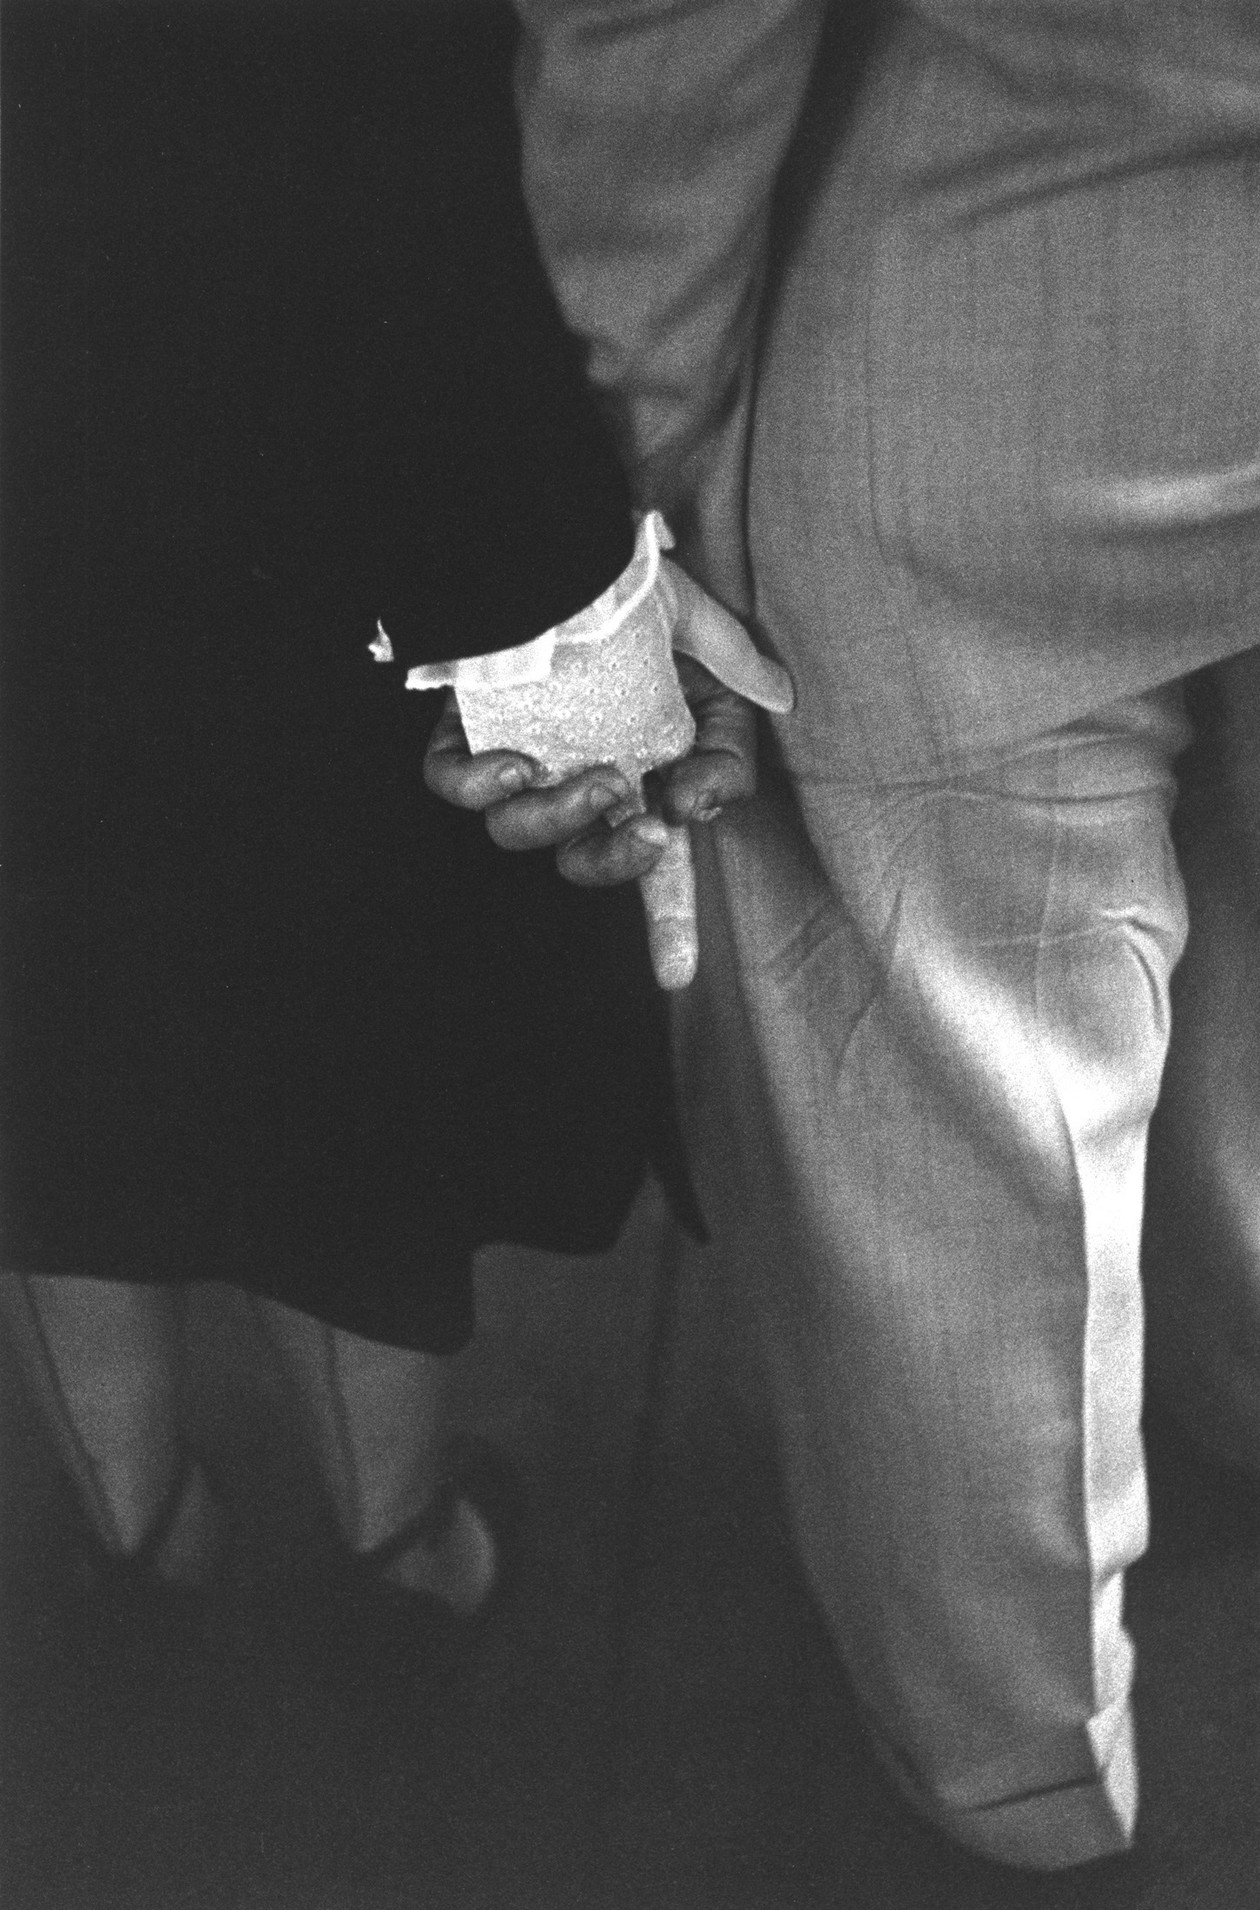 Freudian Handclasp, New York City (1948) by Louis Faurer